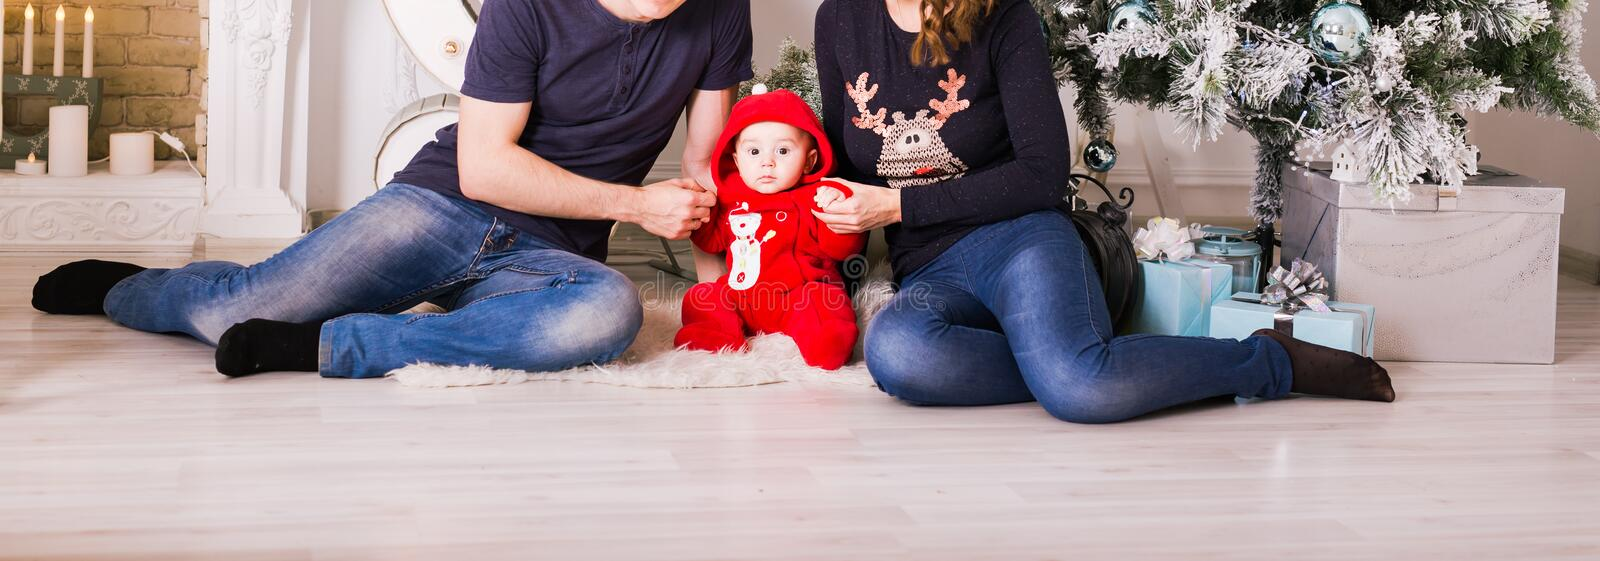 Christmas Family Portrait In Home Holiday Living Room, Present Gift Box, House Decorating By Xmas Tree Candles Garland stock photography